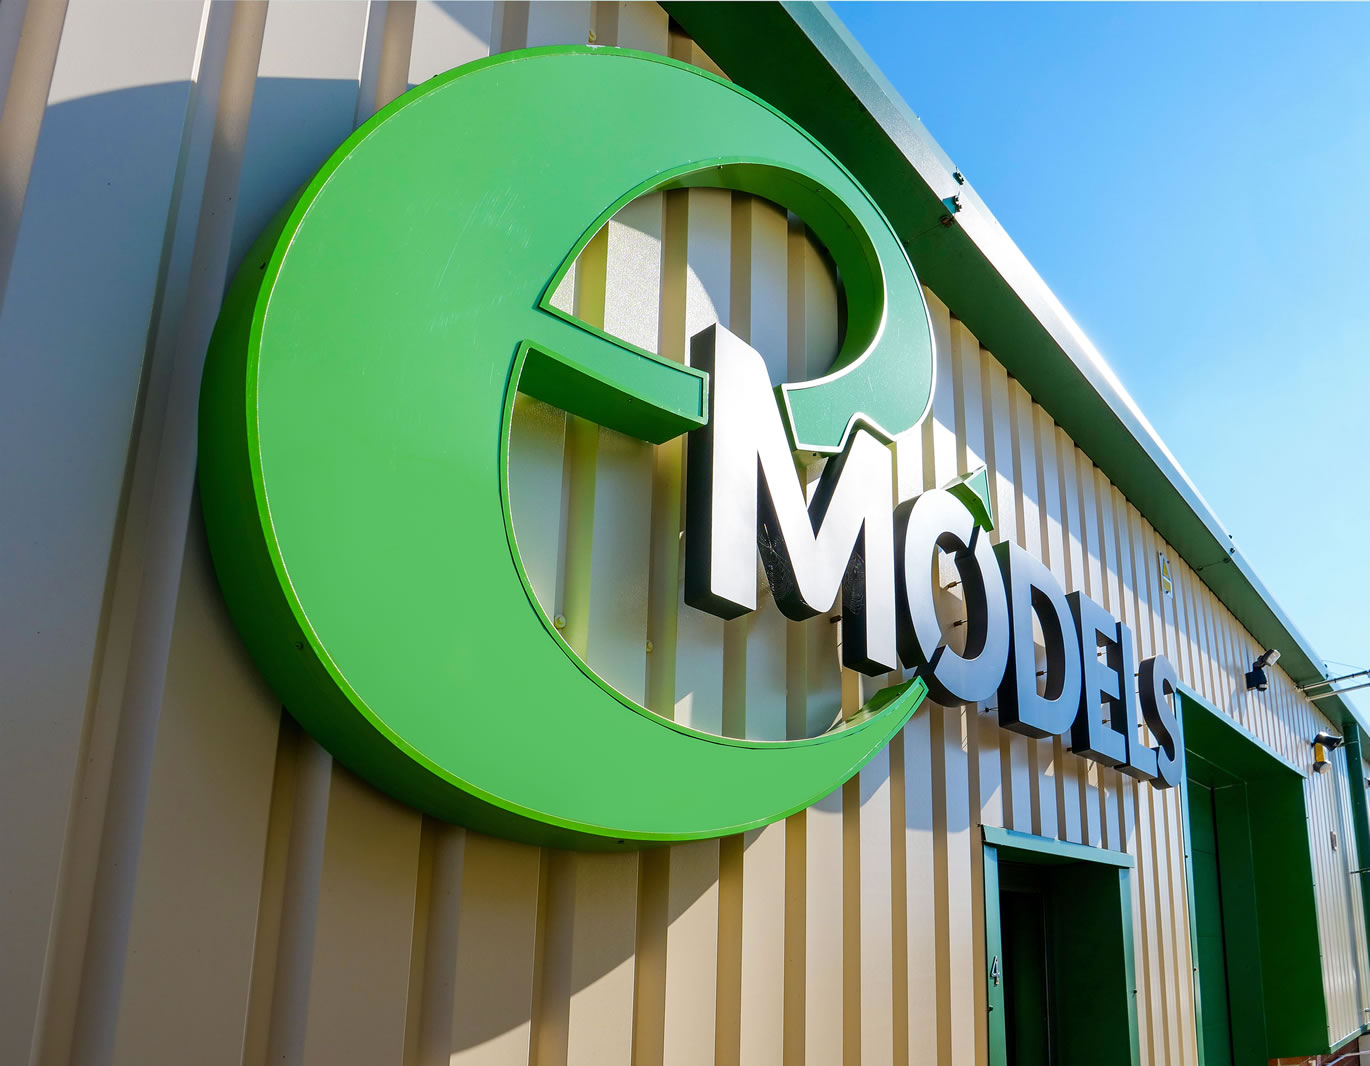 About eModels, the model hobby store with real scale model